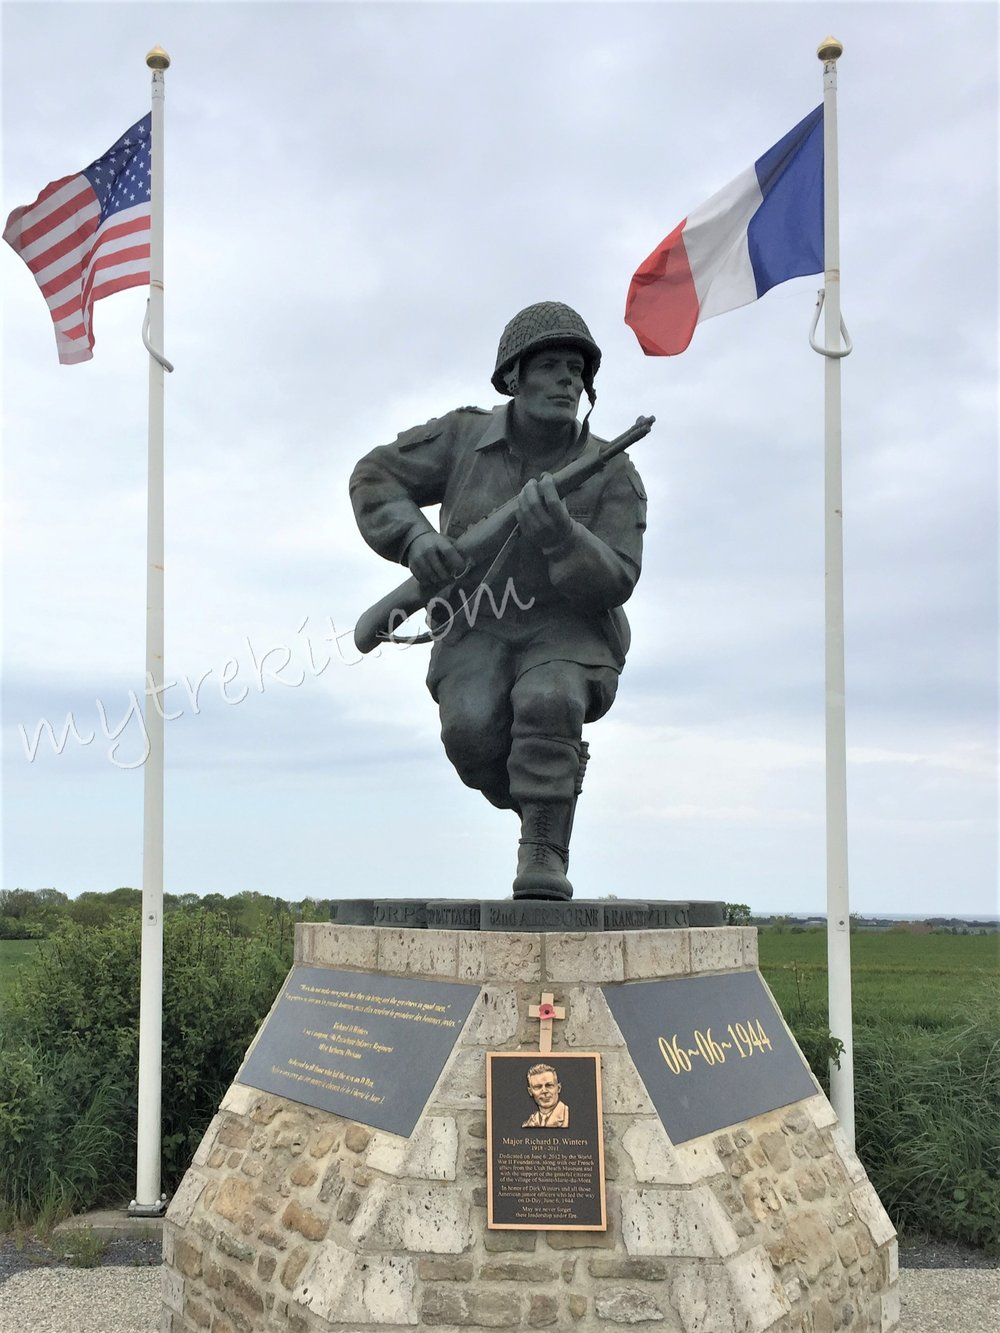 Along the road to Sainte Marie-du-Mont, you will find the 12 ft. bronze Richard Winters Leadership Monument, honoring D-Day's junior U.S. military officers' service on June 6, 1944.